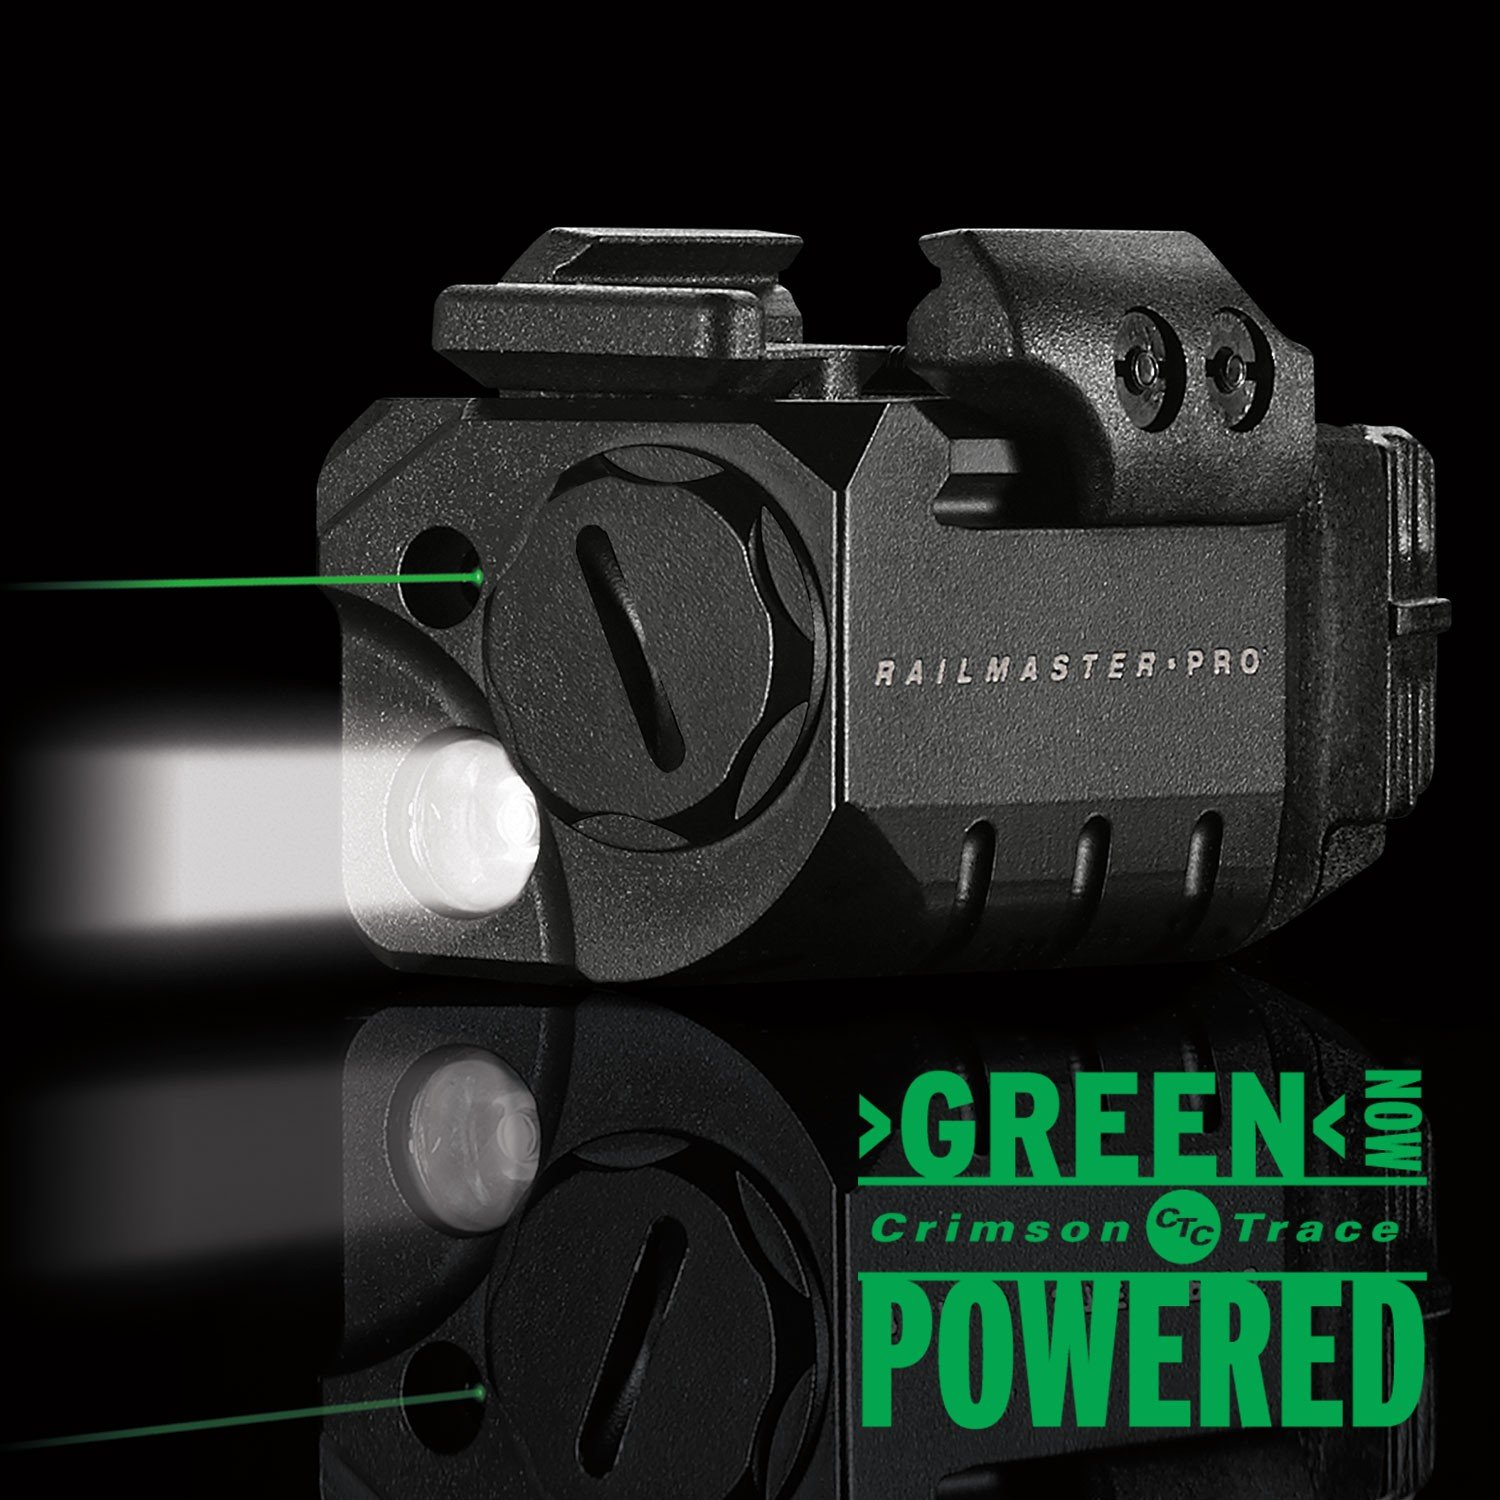 CMR Rail Master Pro Universal Green Laser Sight & Tactical Light